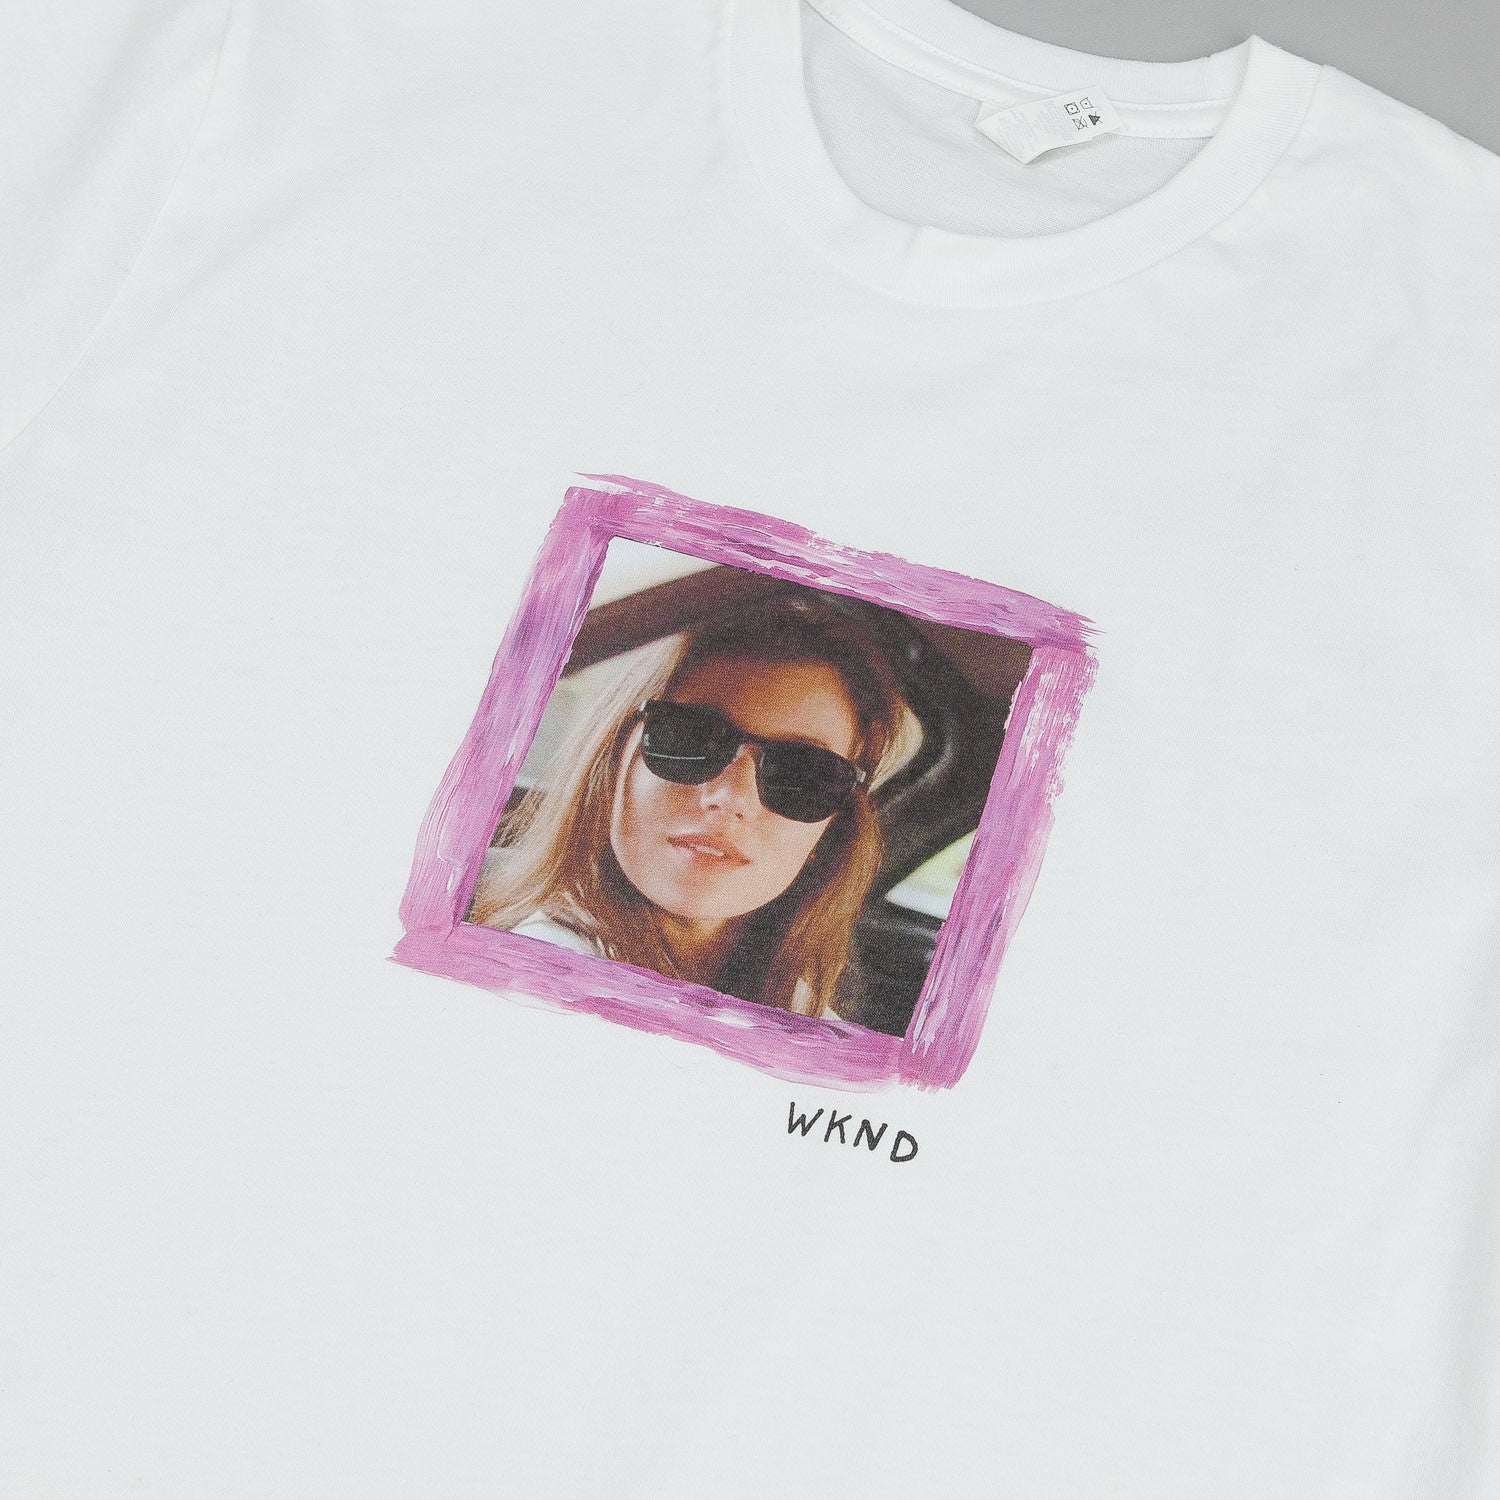 WKND Sloane Peterson T-Shirt White